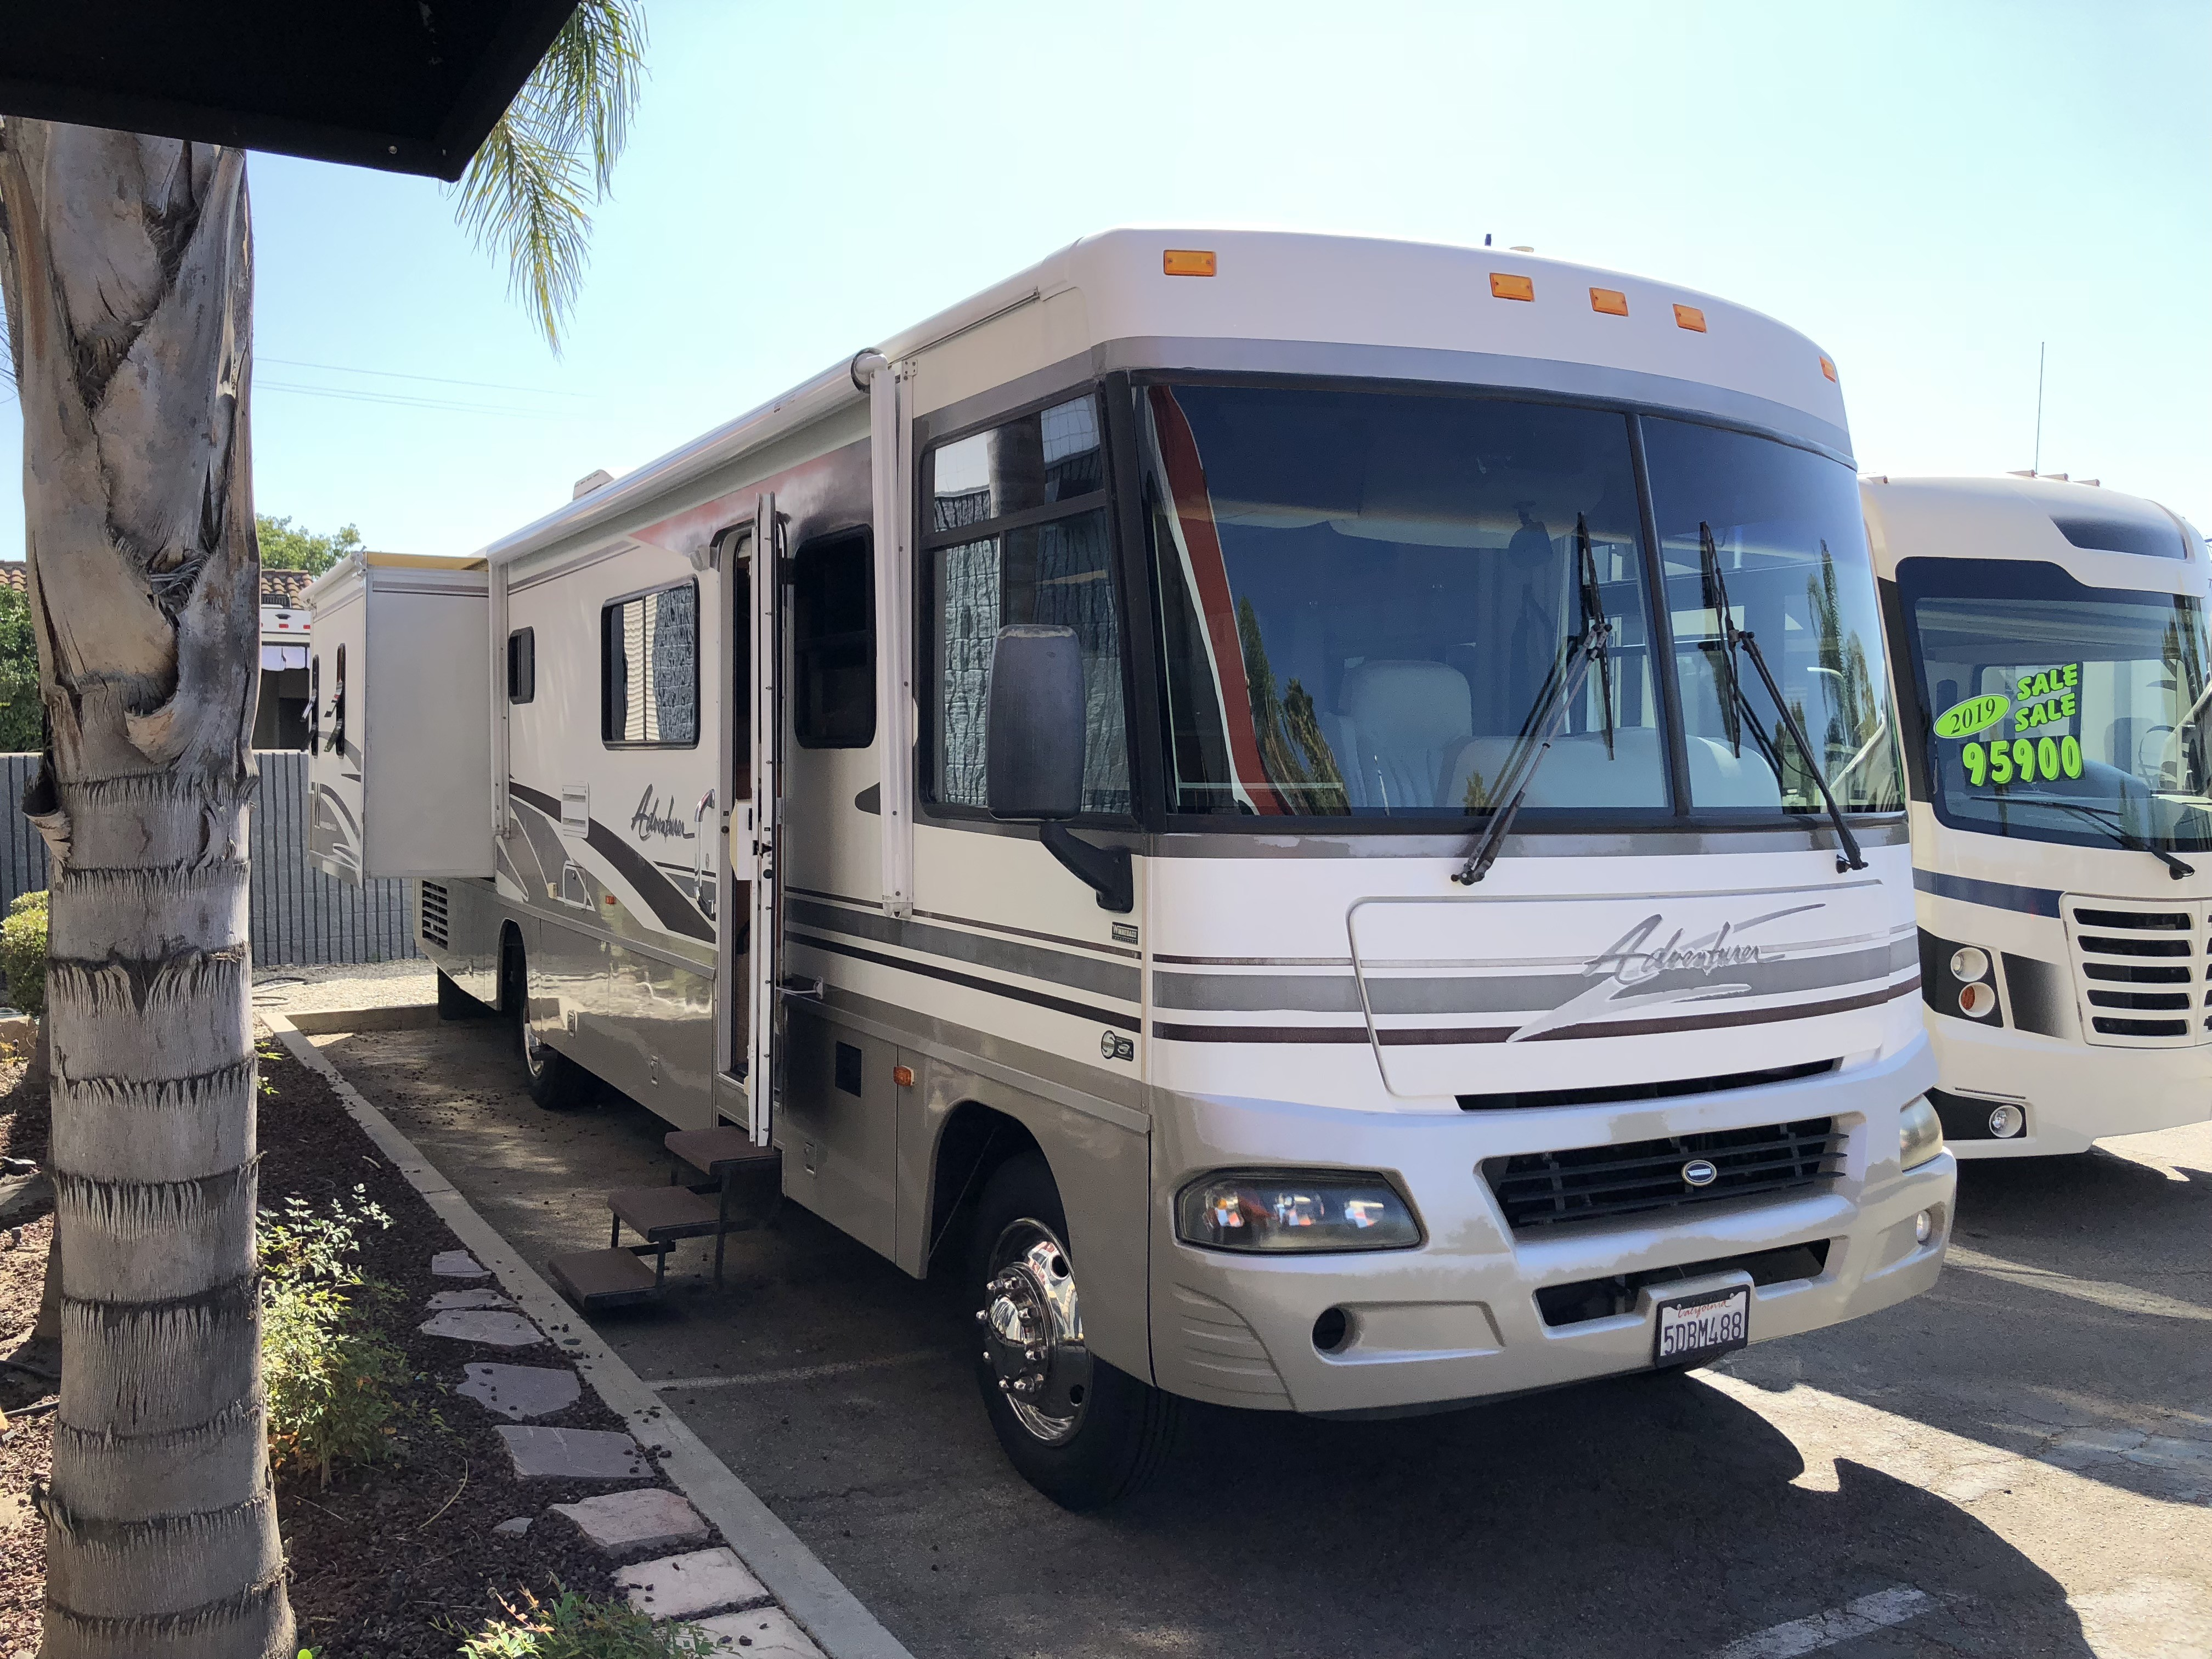 New & Used RV Sales, Parts, & Service